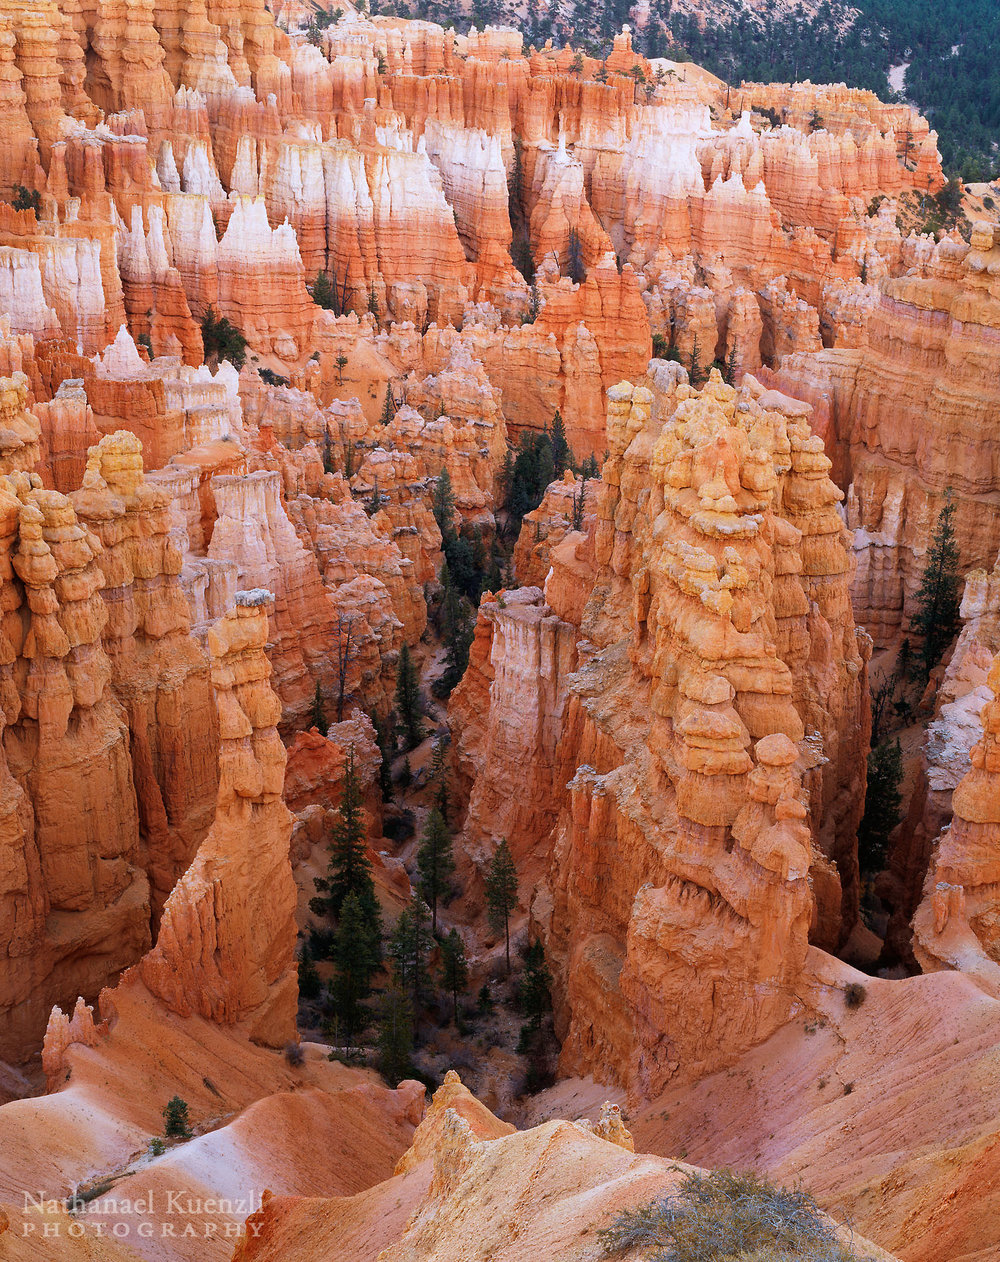 Bryce Canyon National Park, Utah, October 2003